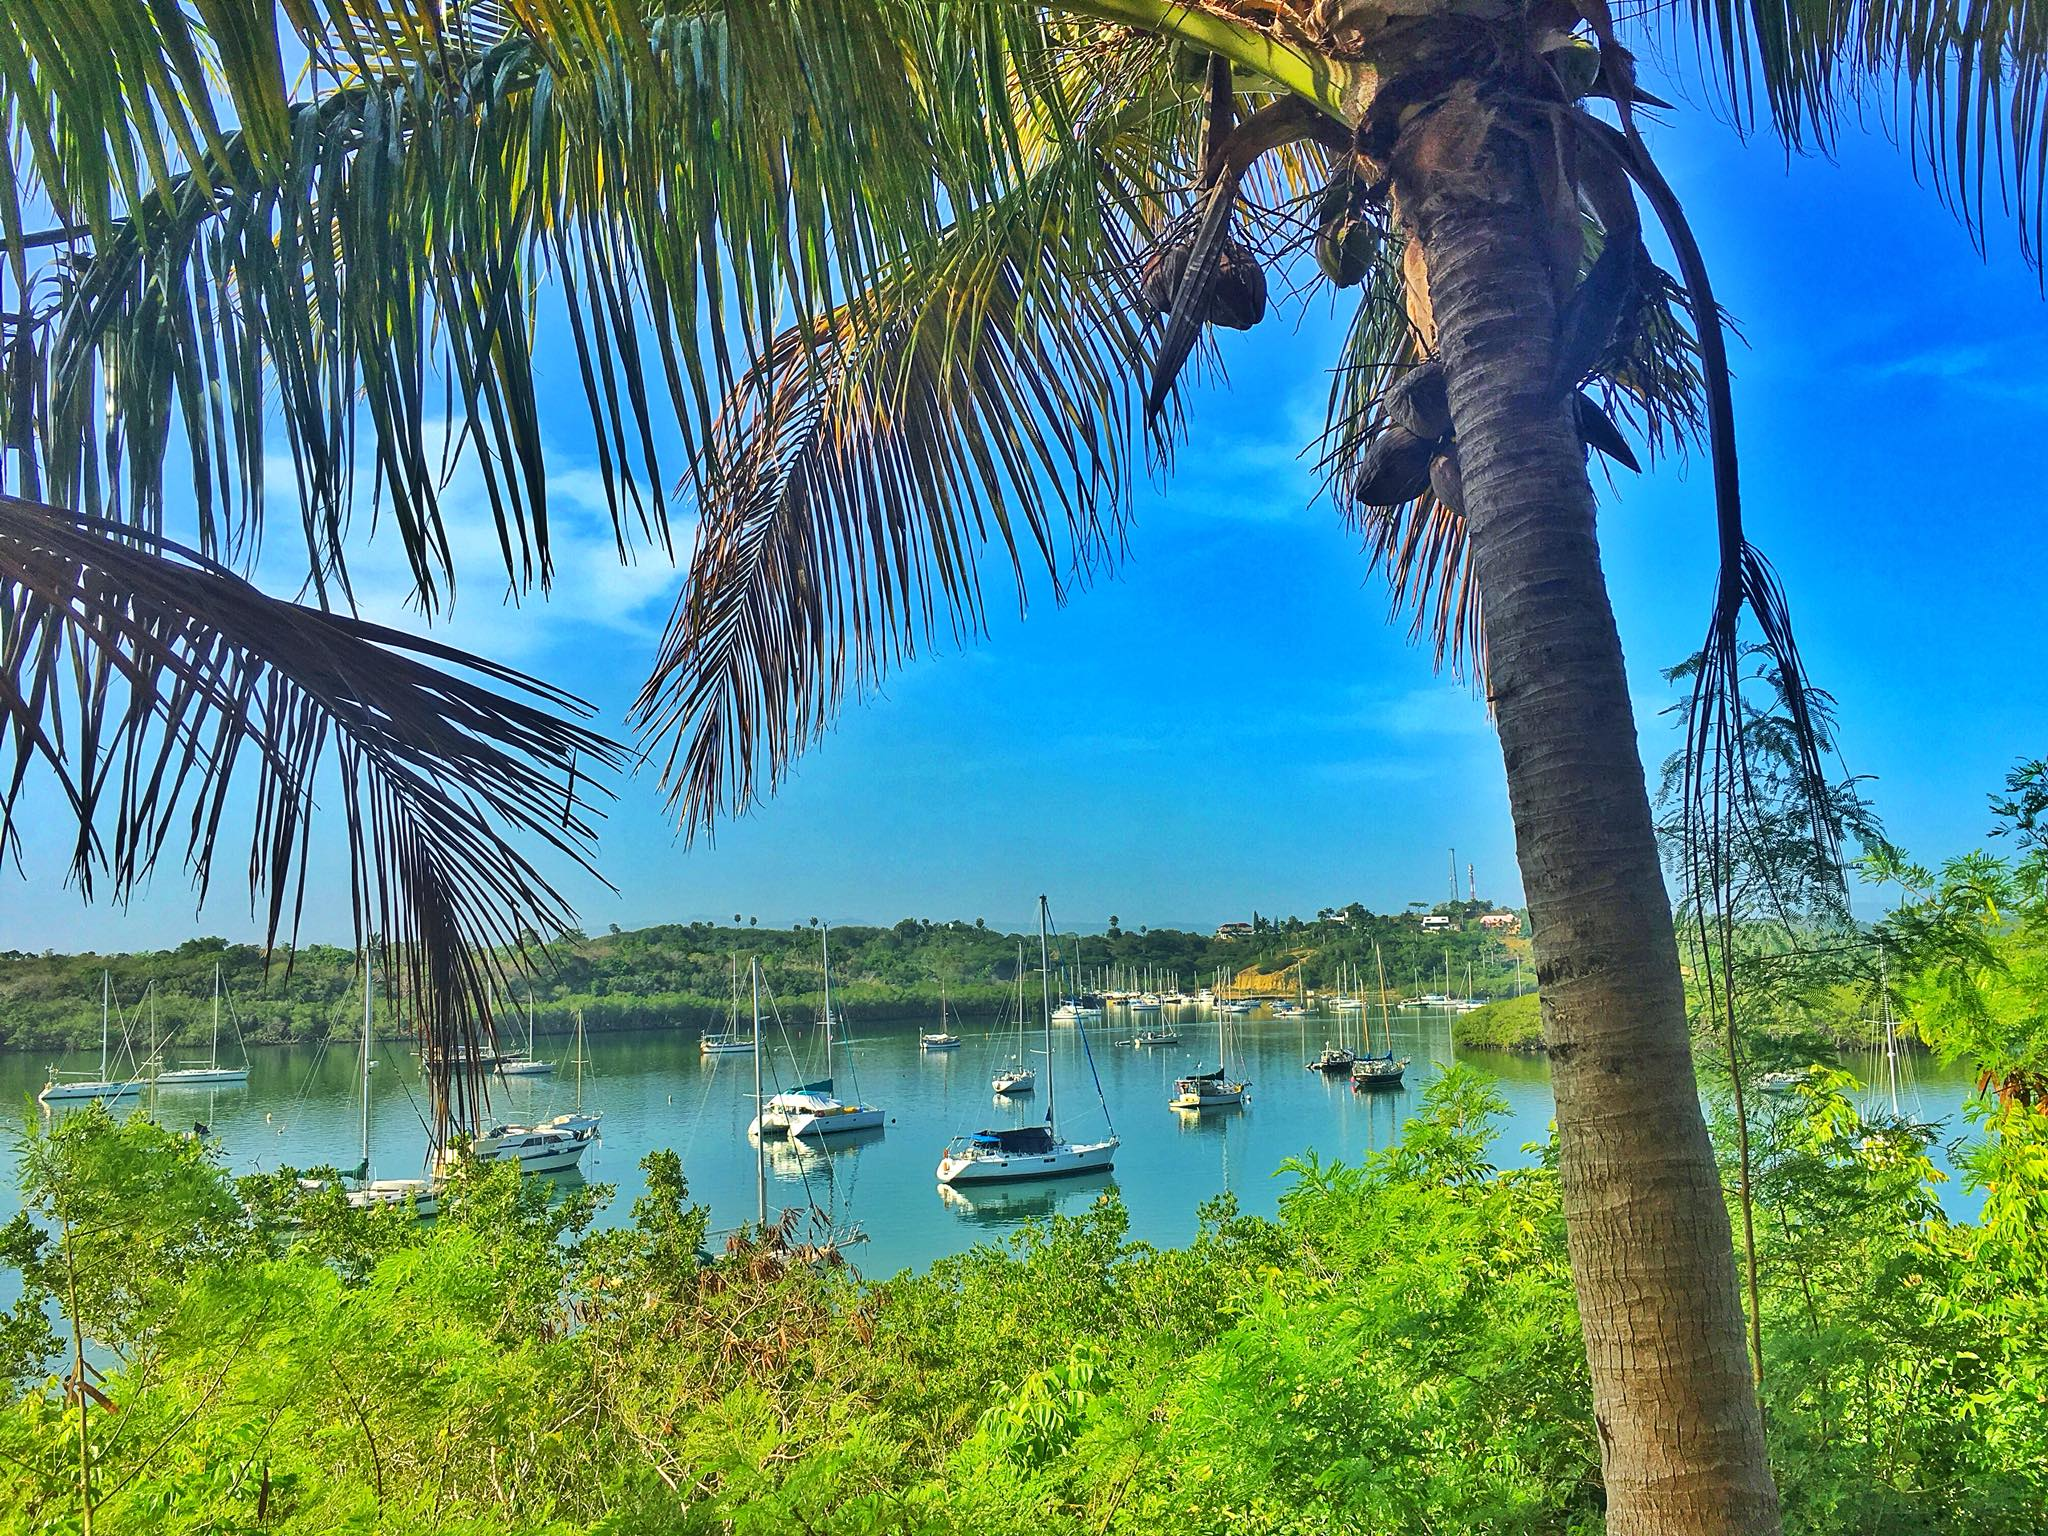 Liveaboard Life Day 100: Starting our Daily Routine in Luperon, Dominican Republic